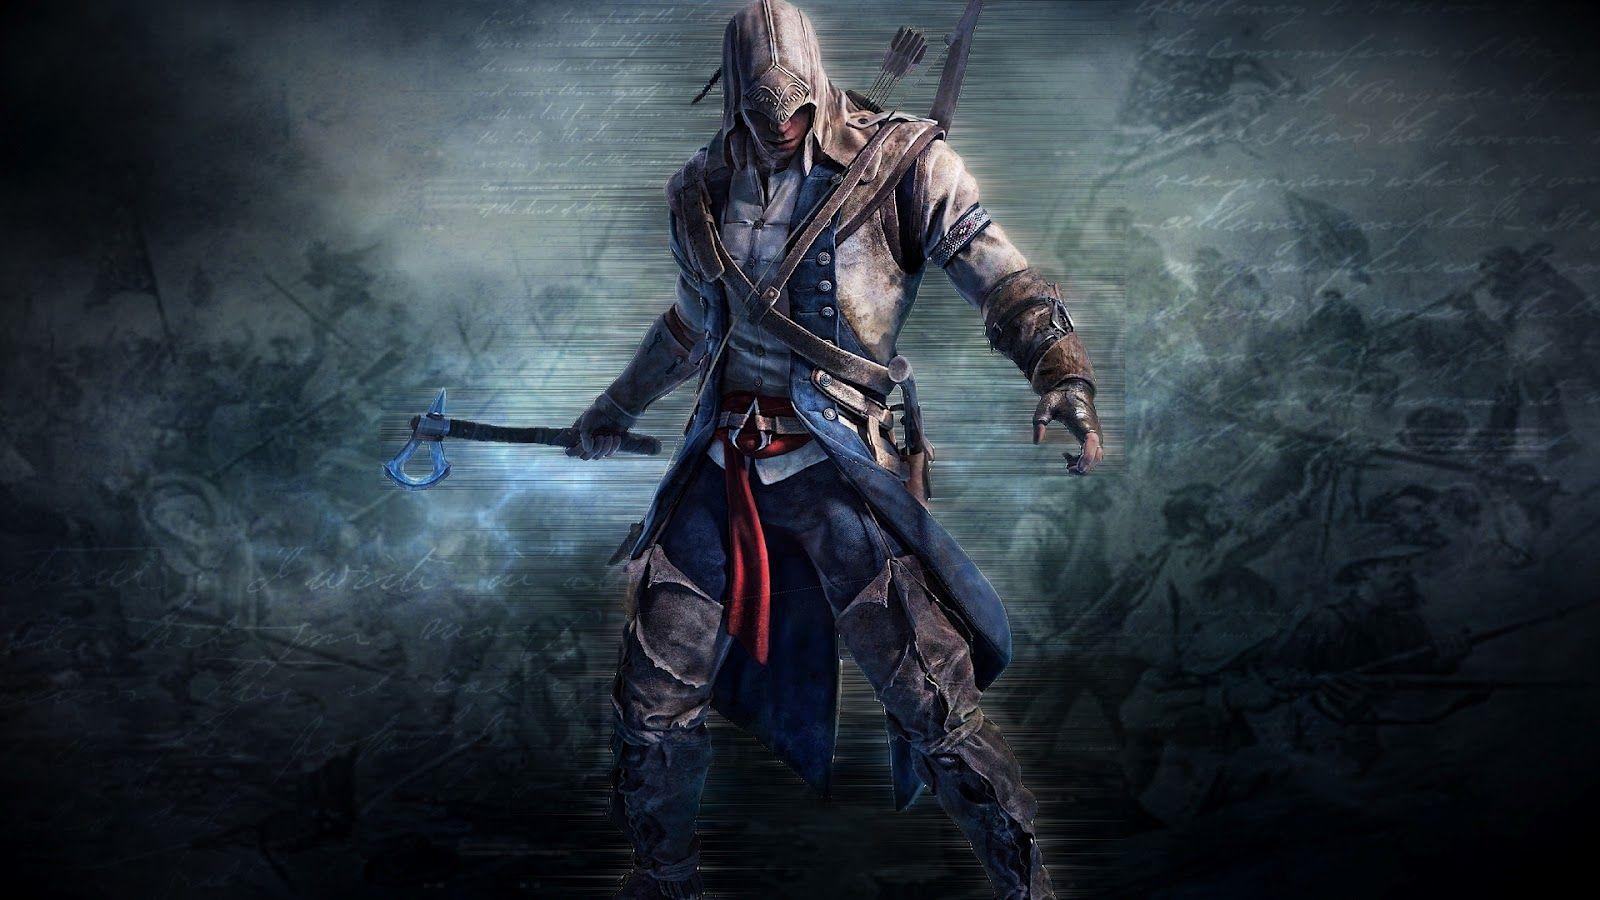 1600x900 Hd Game Wallpapers Top Free 1600x900 Hd Game Backgrounds Wallpaperaccess